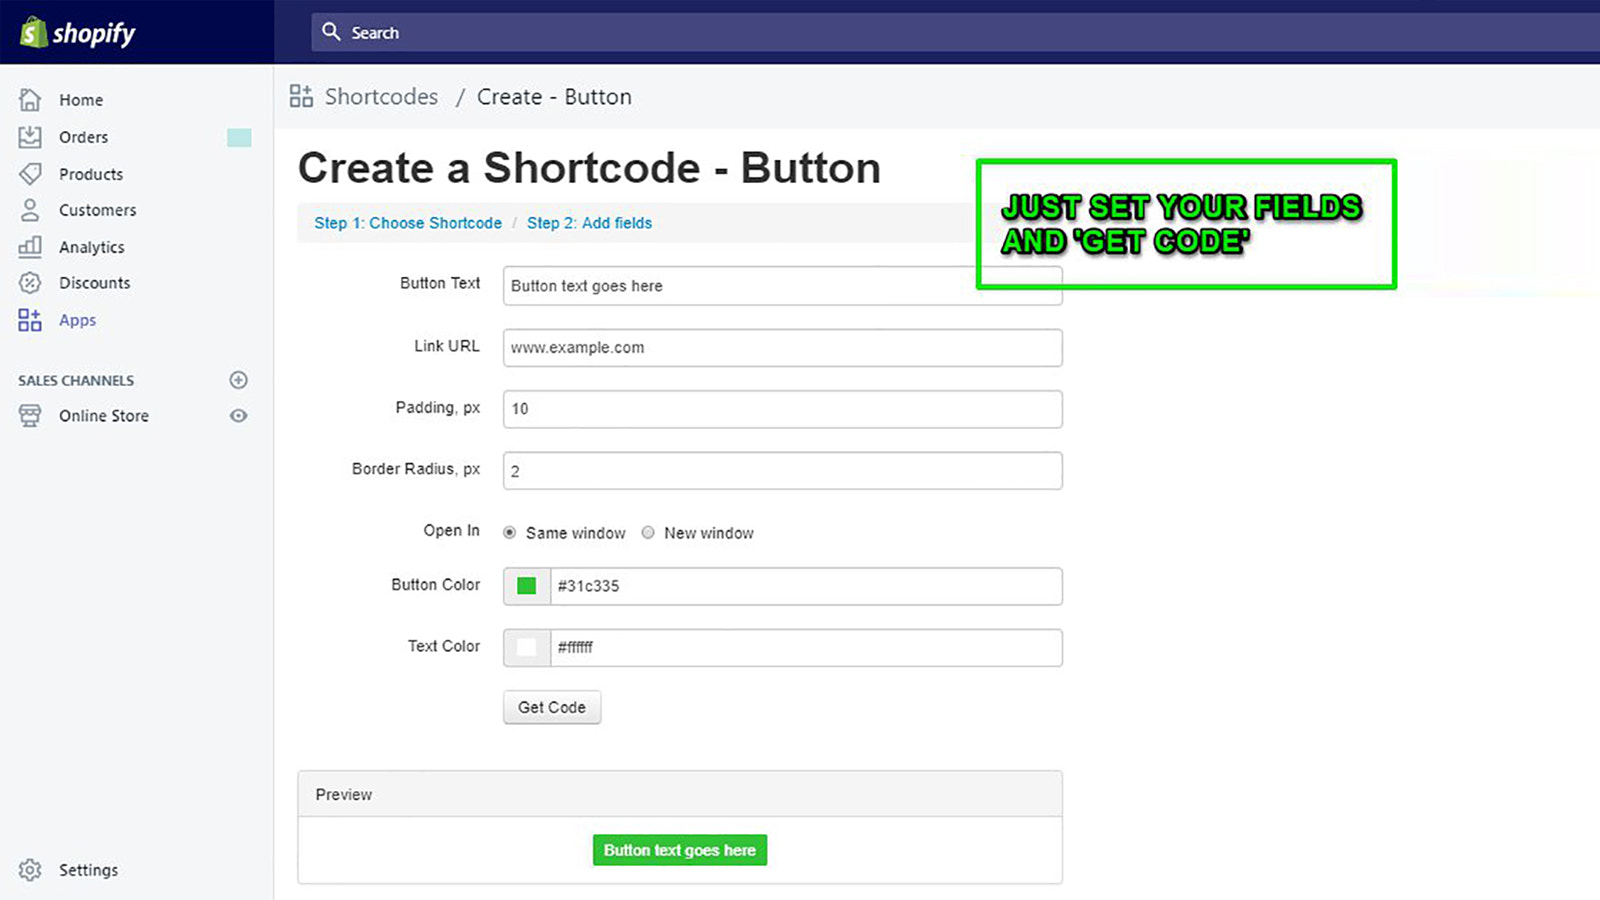 Just set your field and 'get code' - it really is that simple